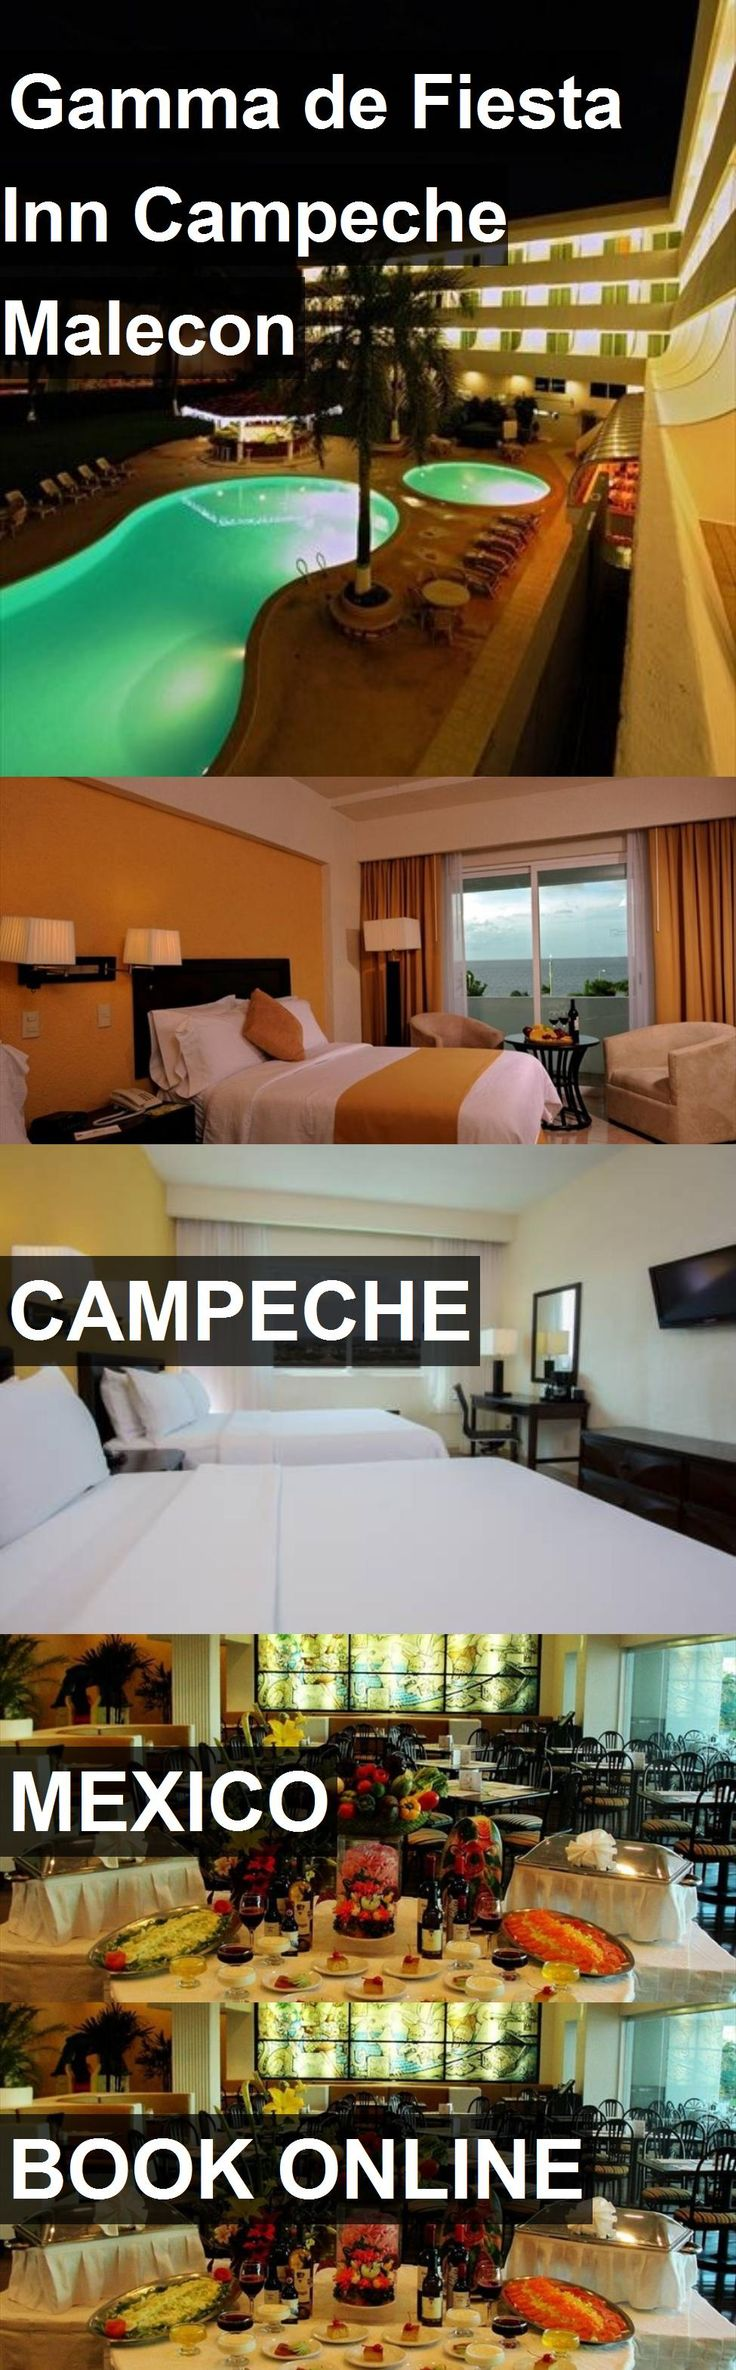 Hotel Gamma de Fiesta Inn Campeche Malecon in Campeche, Mexico. For more information, photos, reviews and best prices please follow the link. #Mexico #Campeche #travel #vacation #hotel